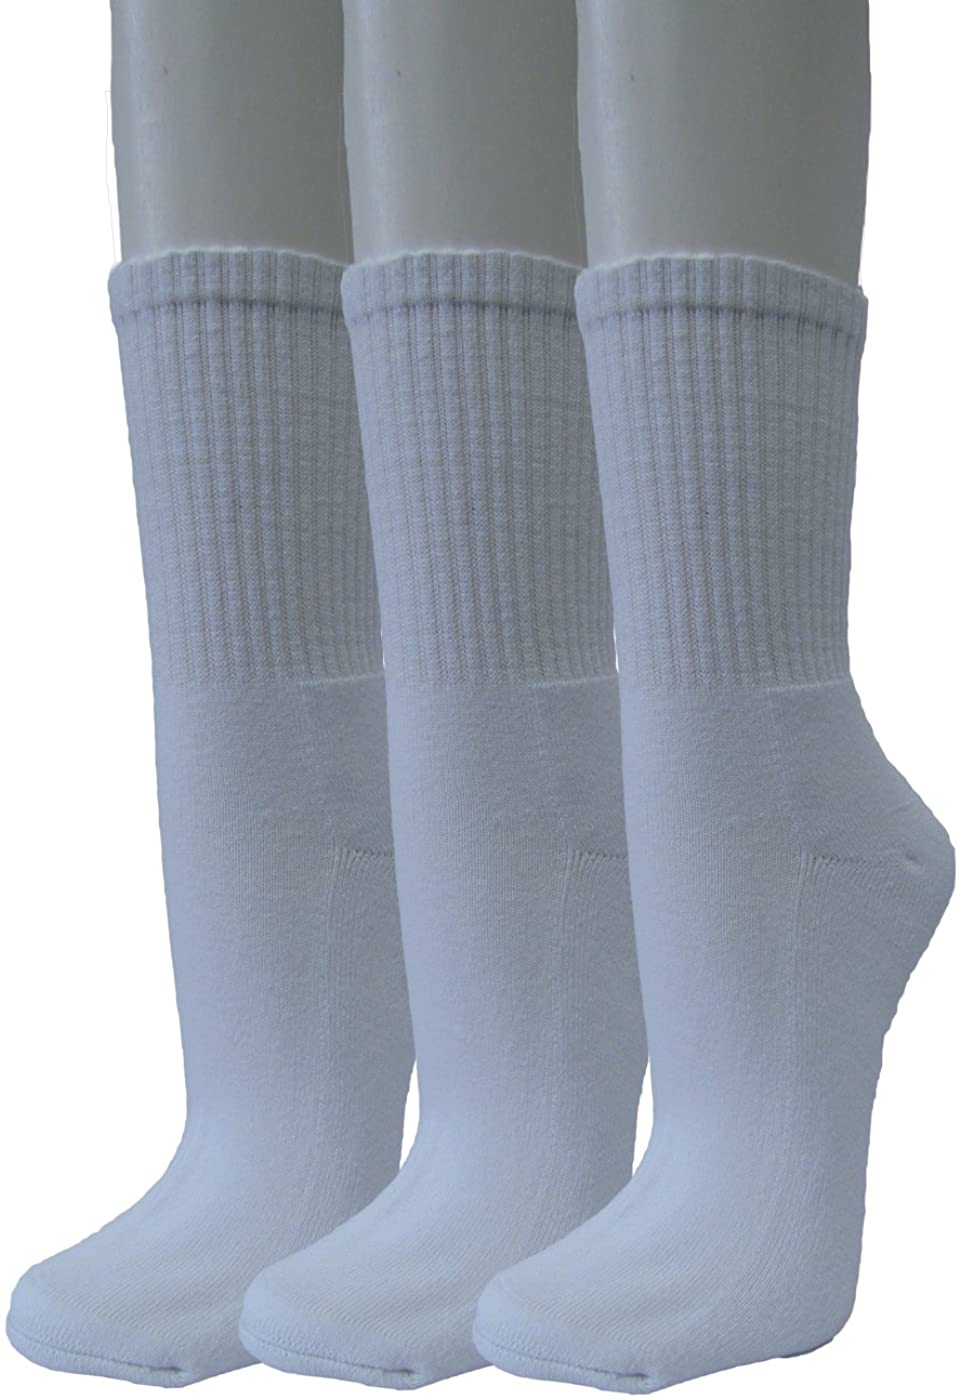 COUVER Unisex Cushion Running Athletic Crew Socks - High Ankle/Quarter